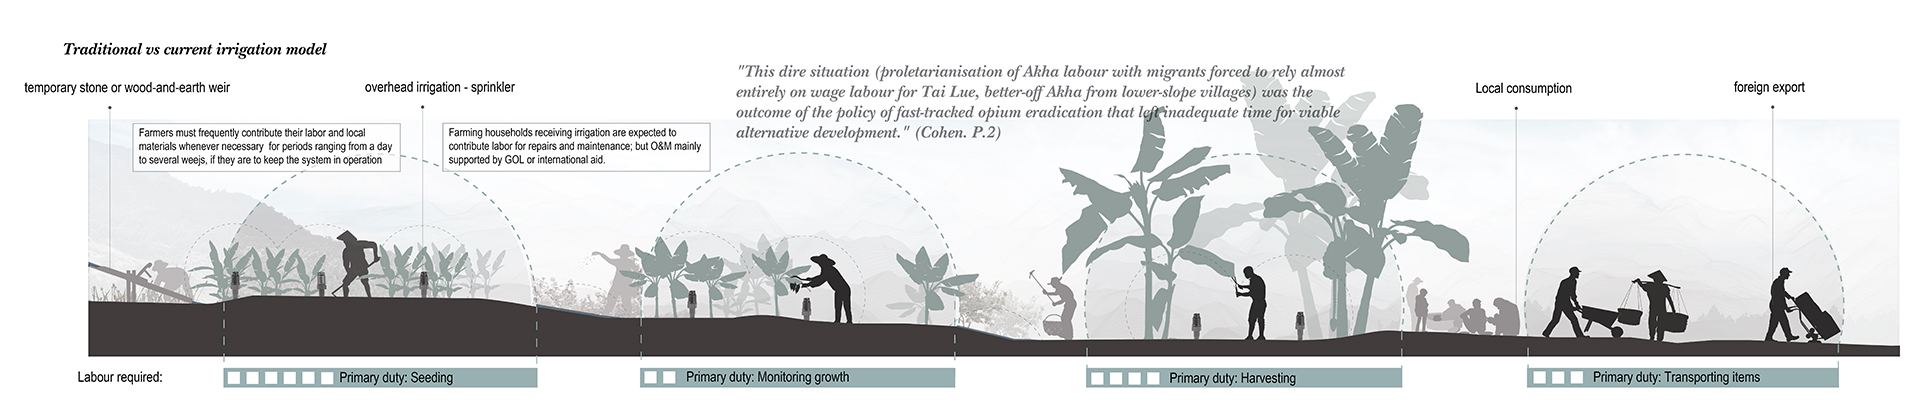 Enlarge Photo: The irrigation model, including methodologies, has been alternated due to the labour relocation within the district, and adaptation of cash crops in contract farming. By WONG Nok Yiu Vanessa, SONG Ziqi Sally.